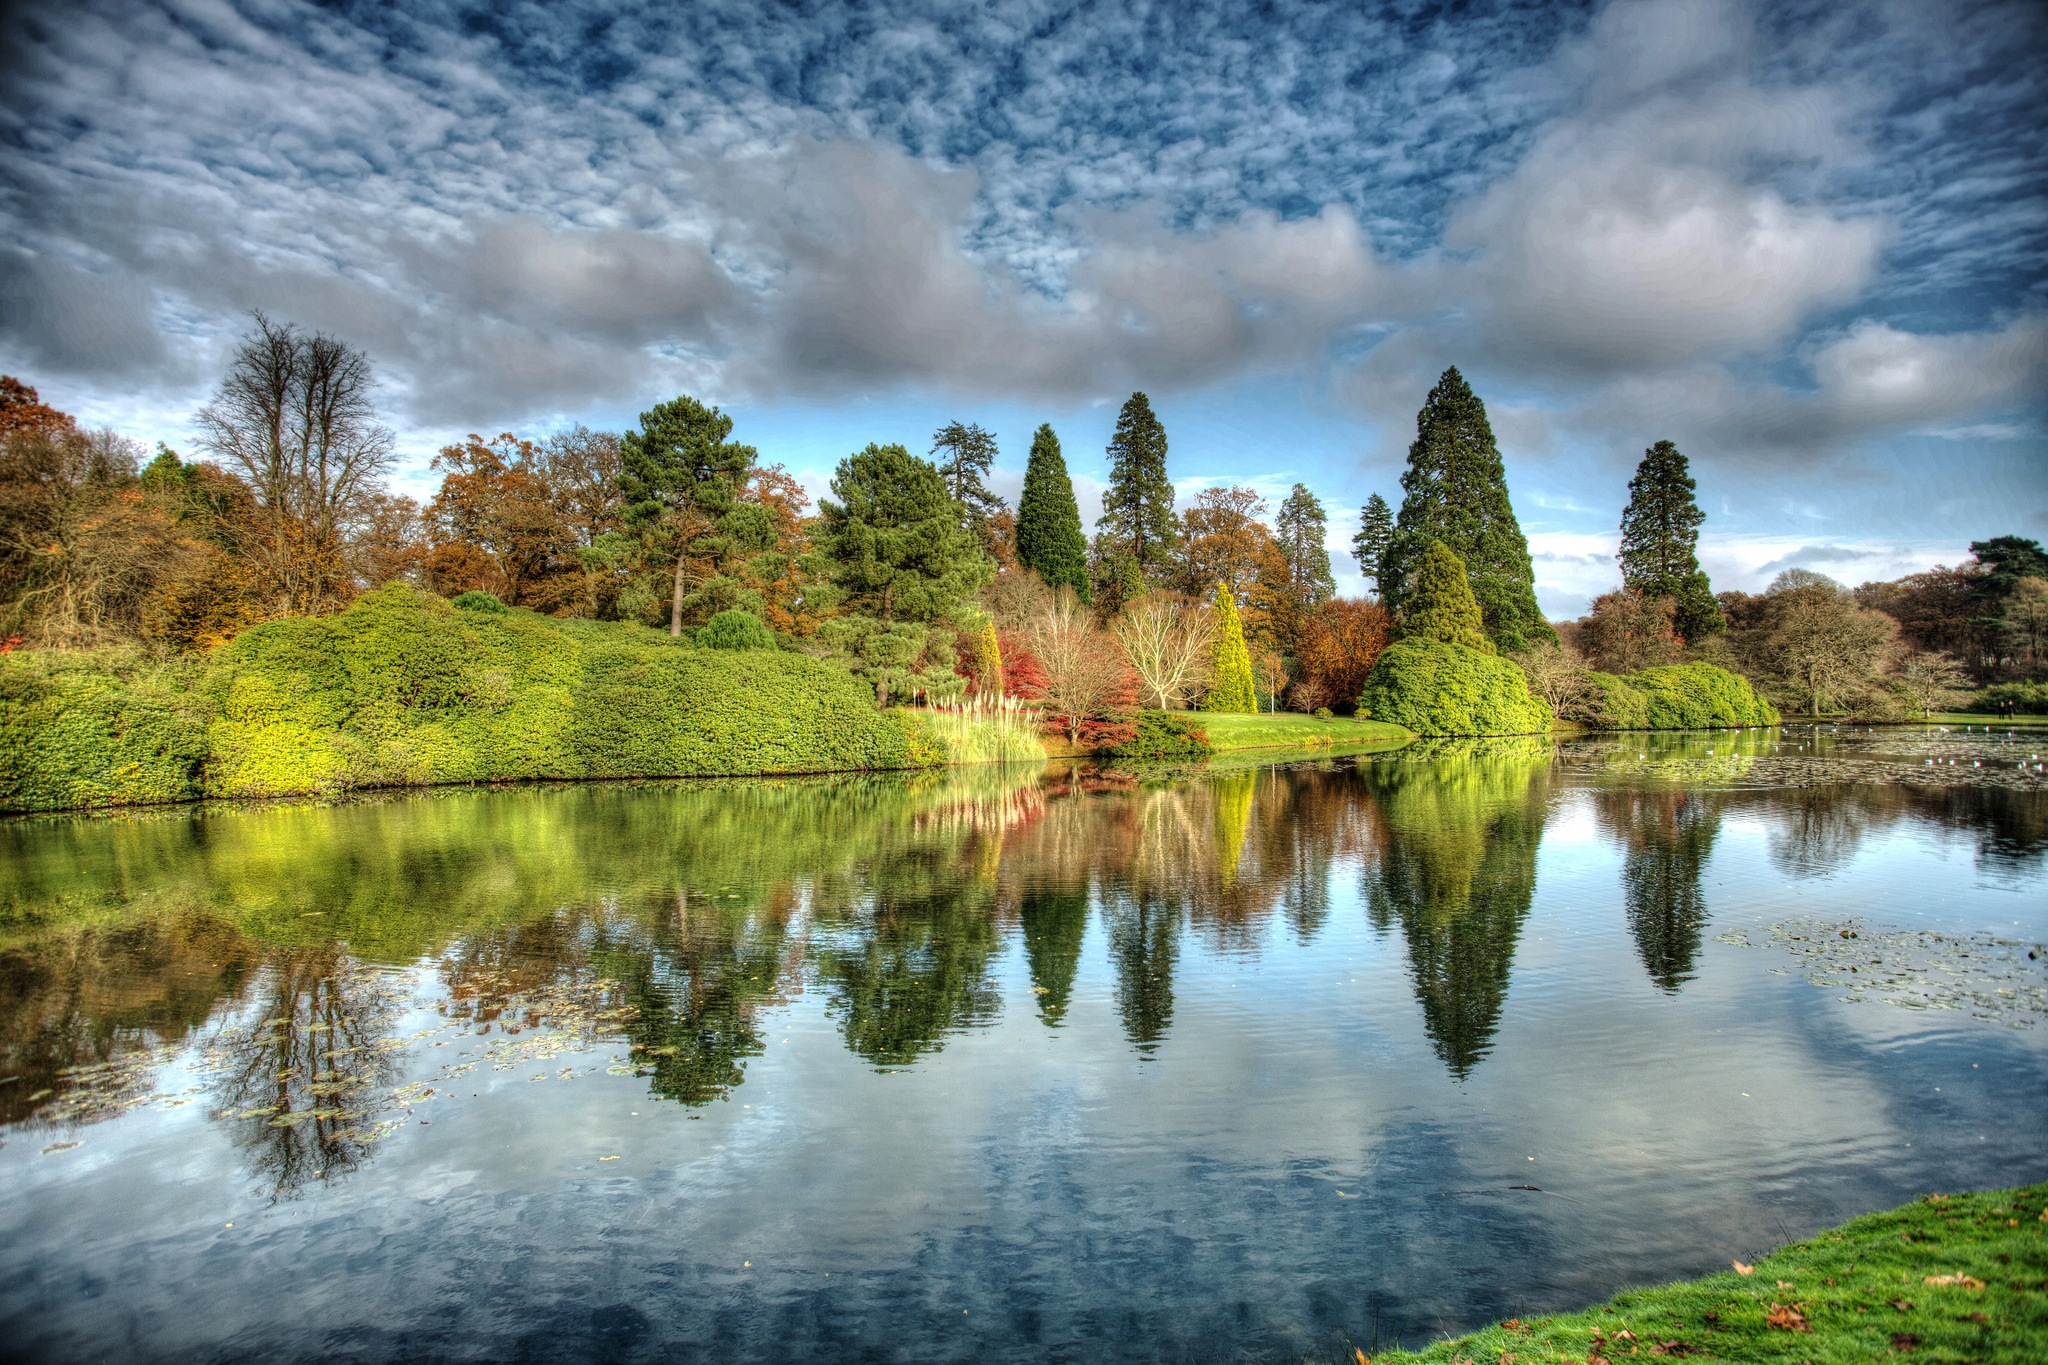 A Reflection of Autumn by Photographer Gino Cinganelli